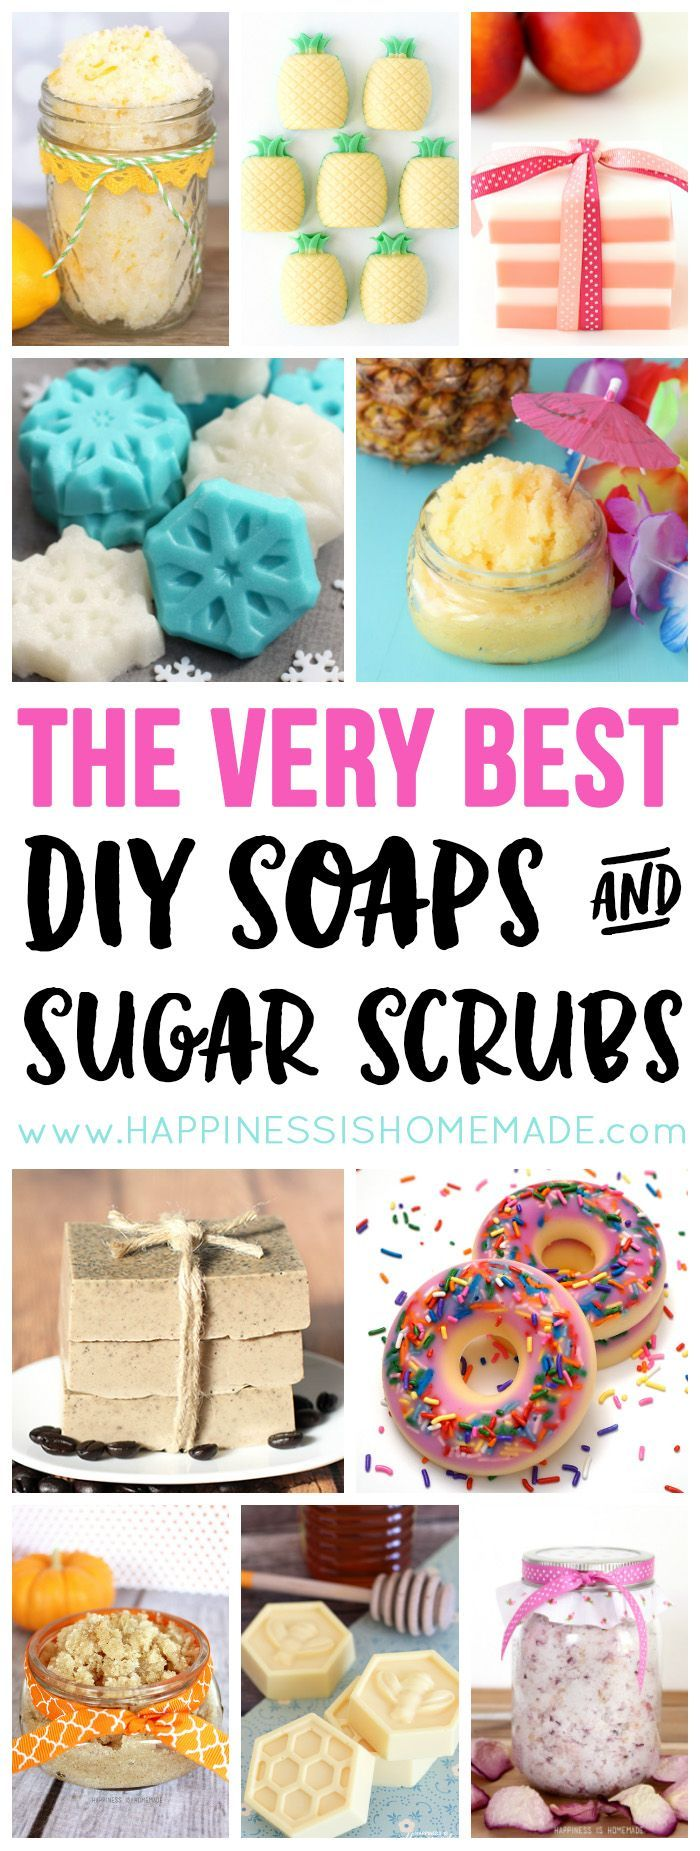 These quick, easy, and inexpensive DIY soaps and sugar scrub recipes are the best! They make fantastic homemade gift ideas - perfect for the holidays!